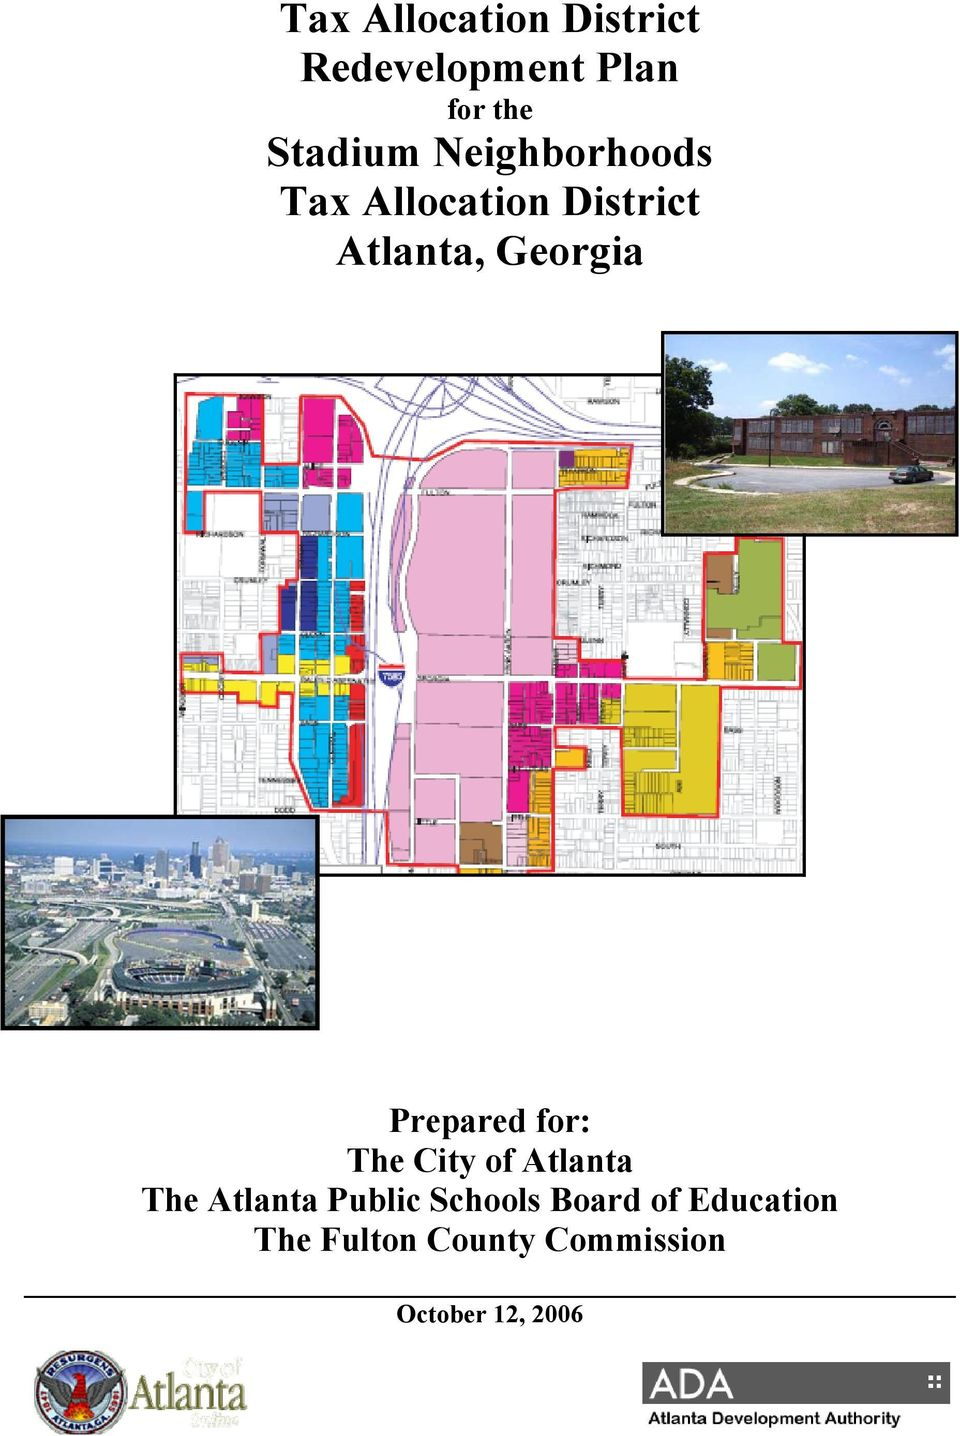 Prepared for: The City of Atlanta The Atlanta Public